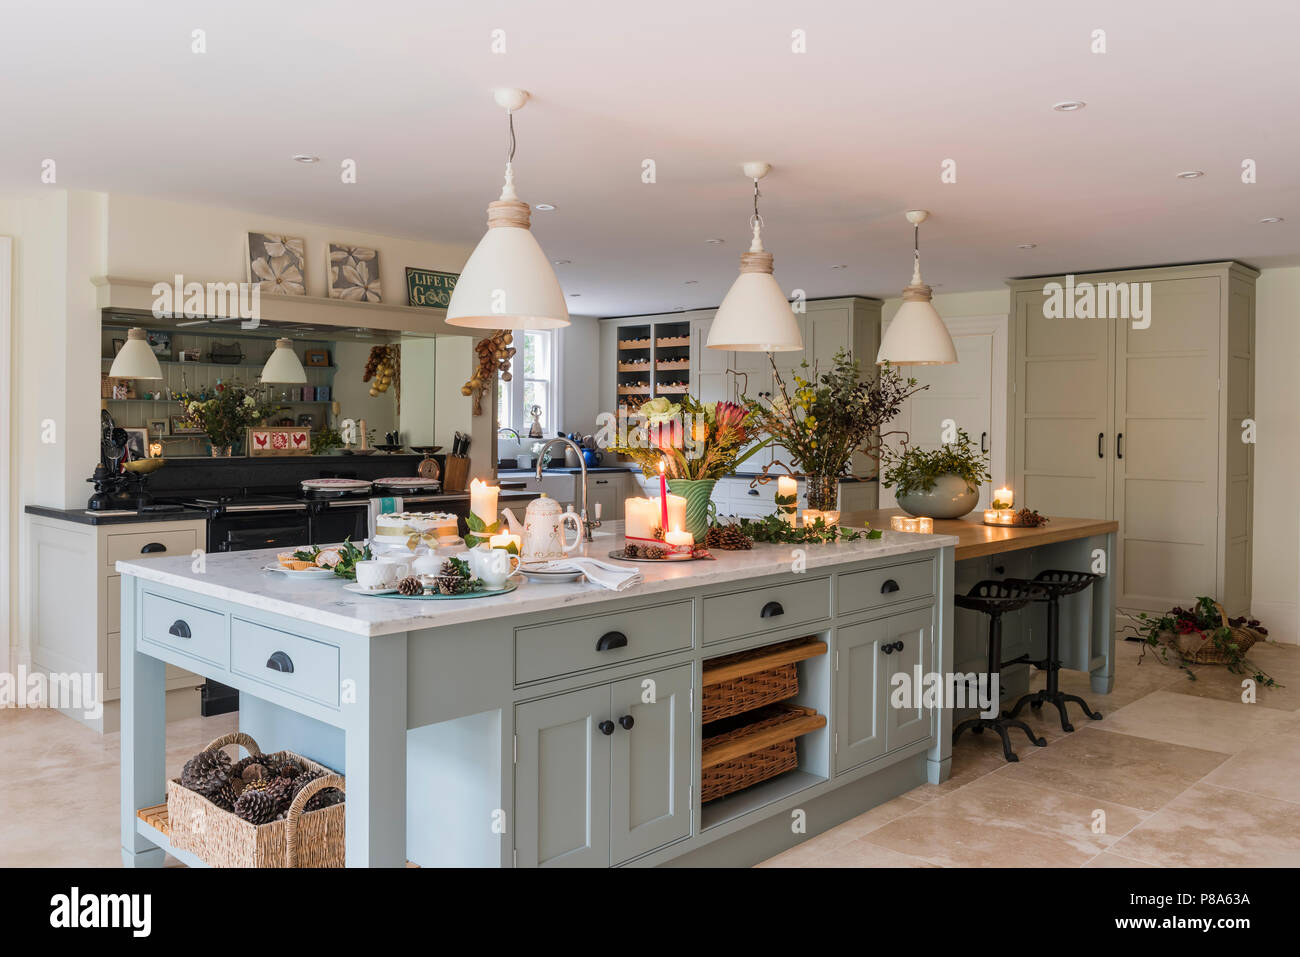 Cream Pendant Lights Hang Above Marble Topped Island Unit In Regency Farmhouse Kitchen Stock Photo Alamy